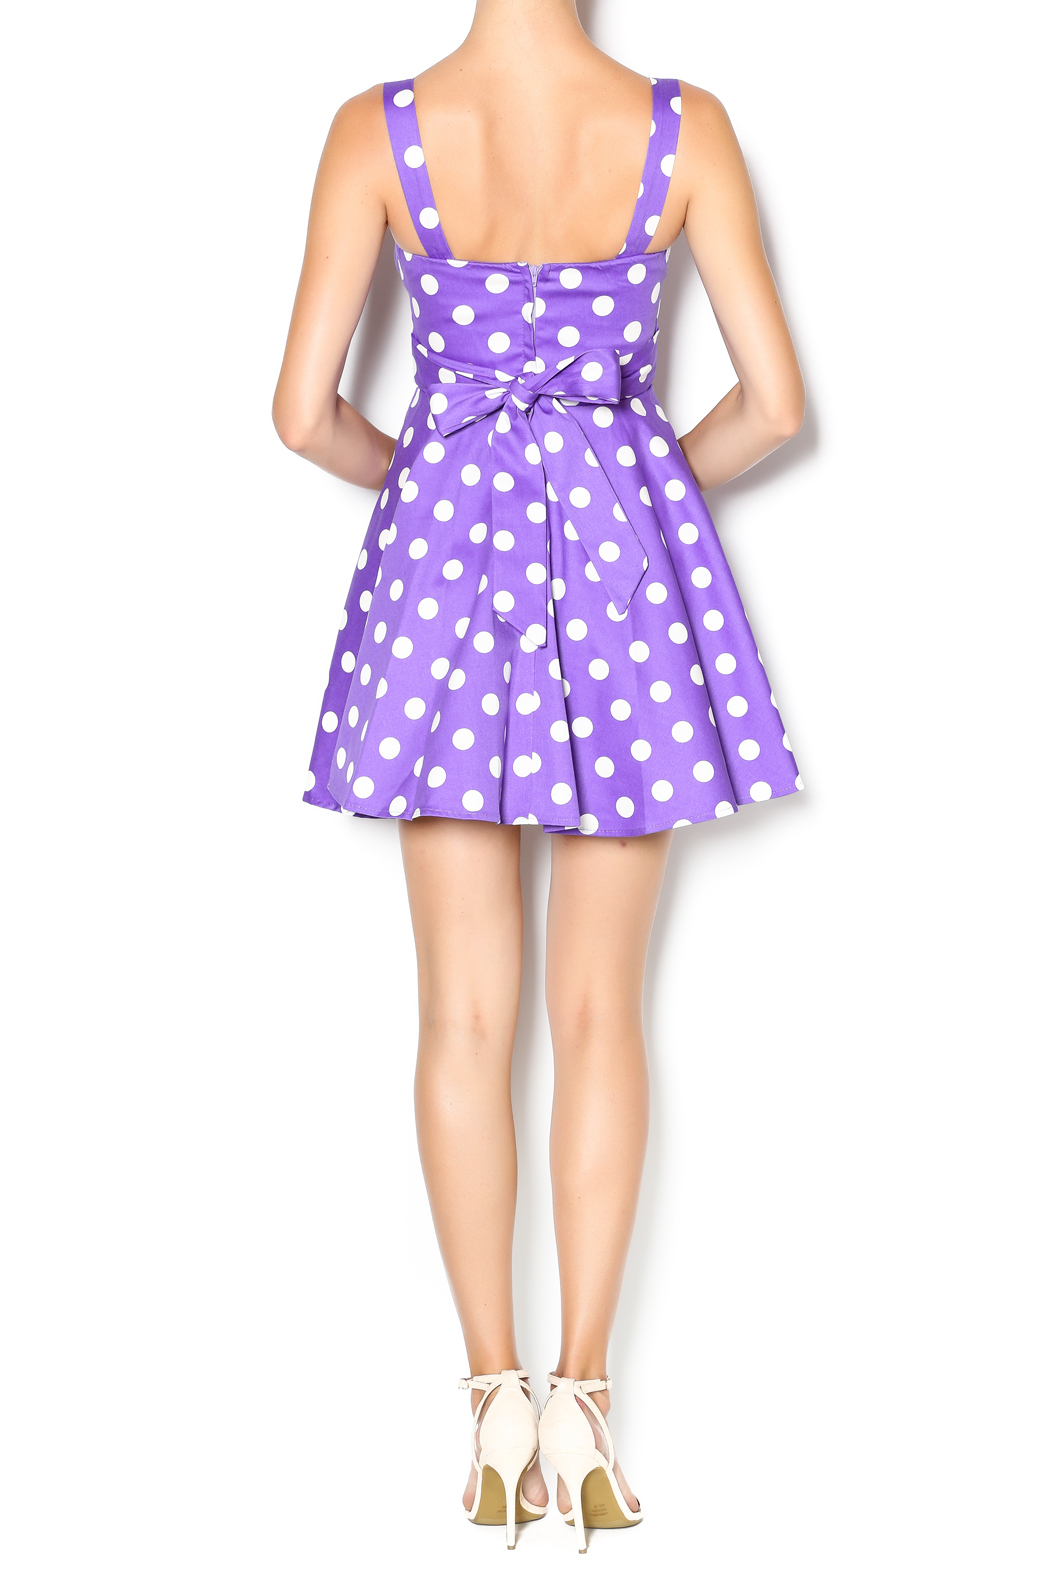 Ixia Purple Polka Dot Dress from California by MP Couture — Shoptiques